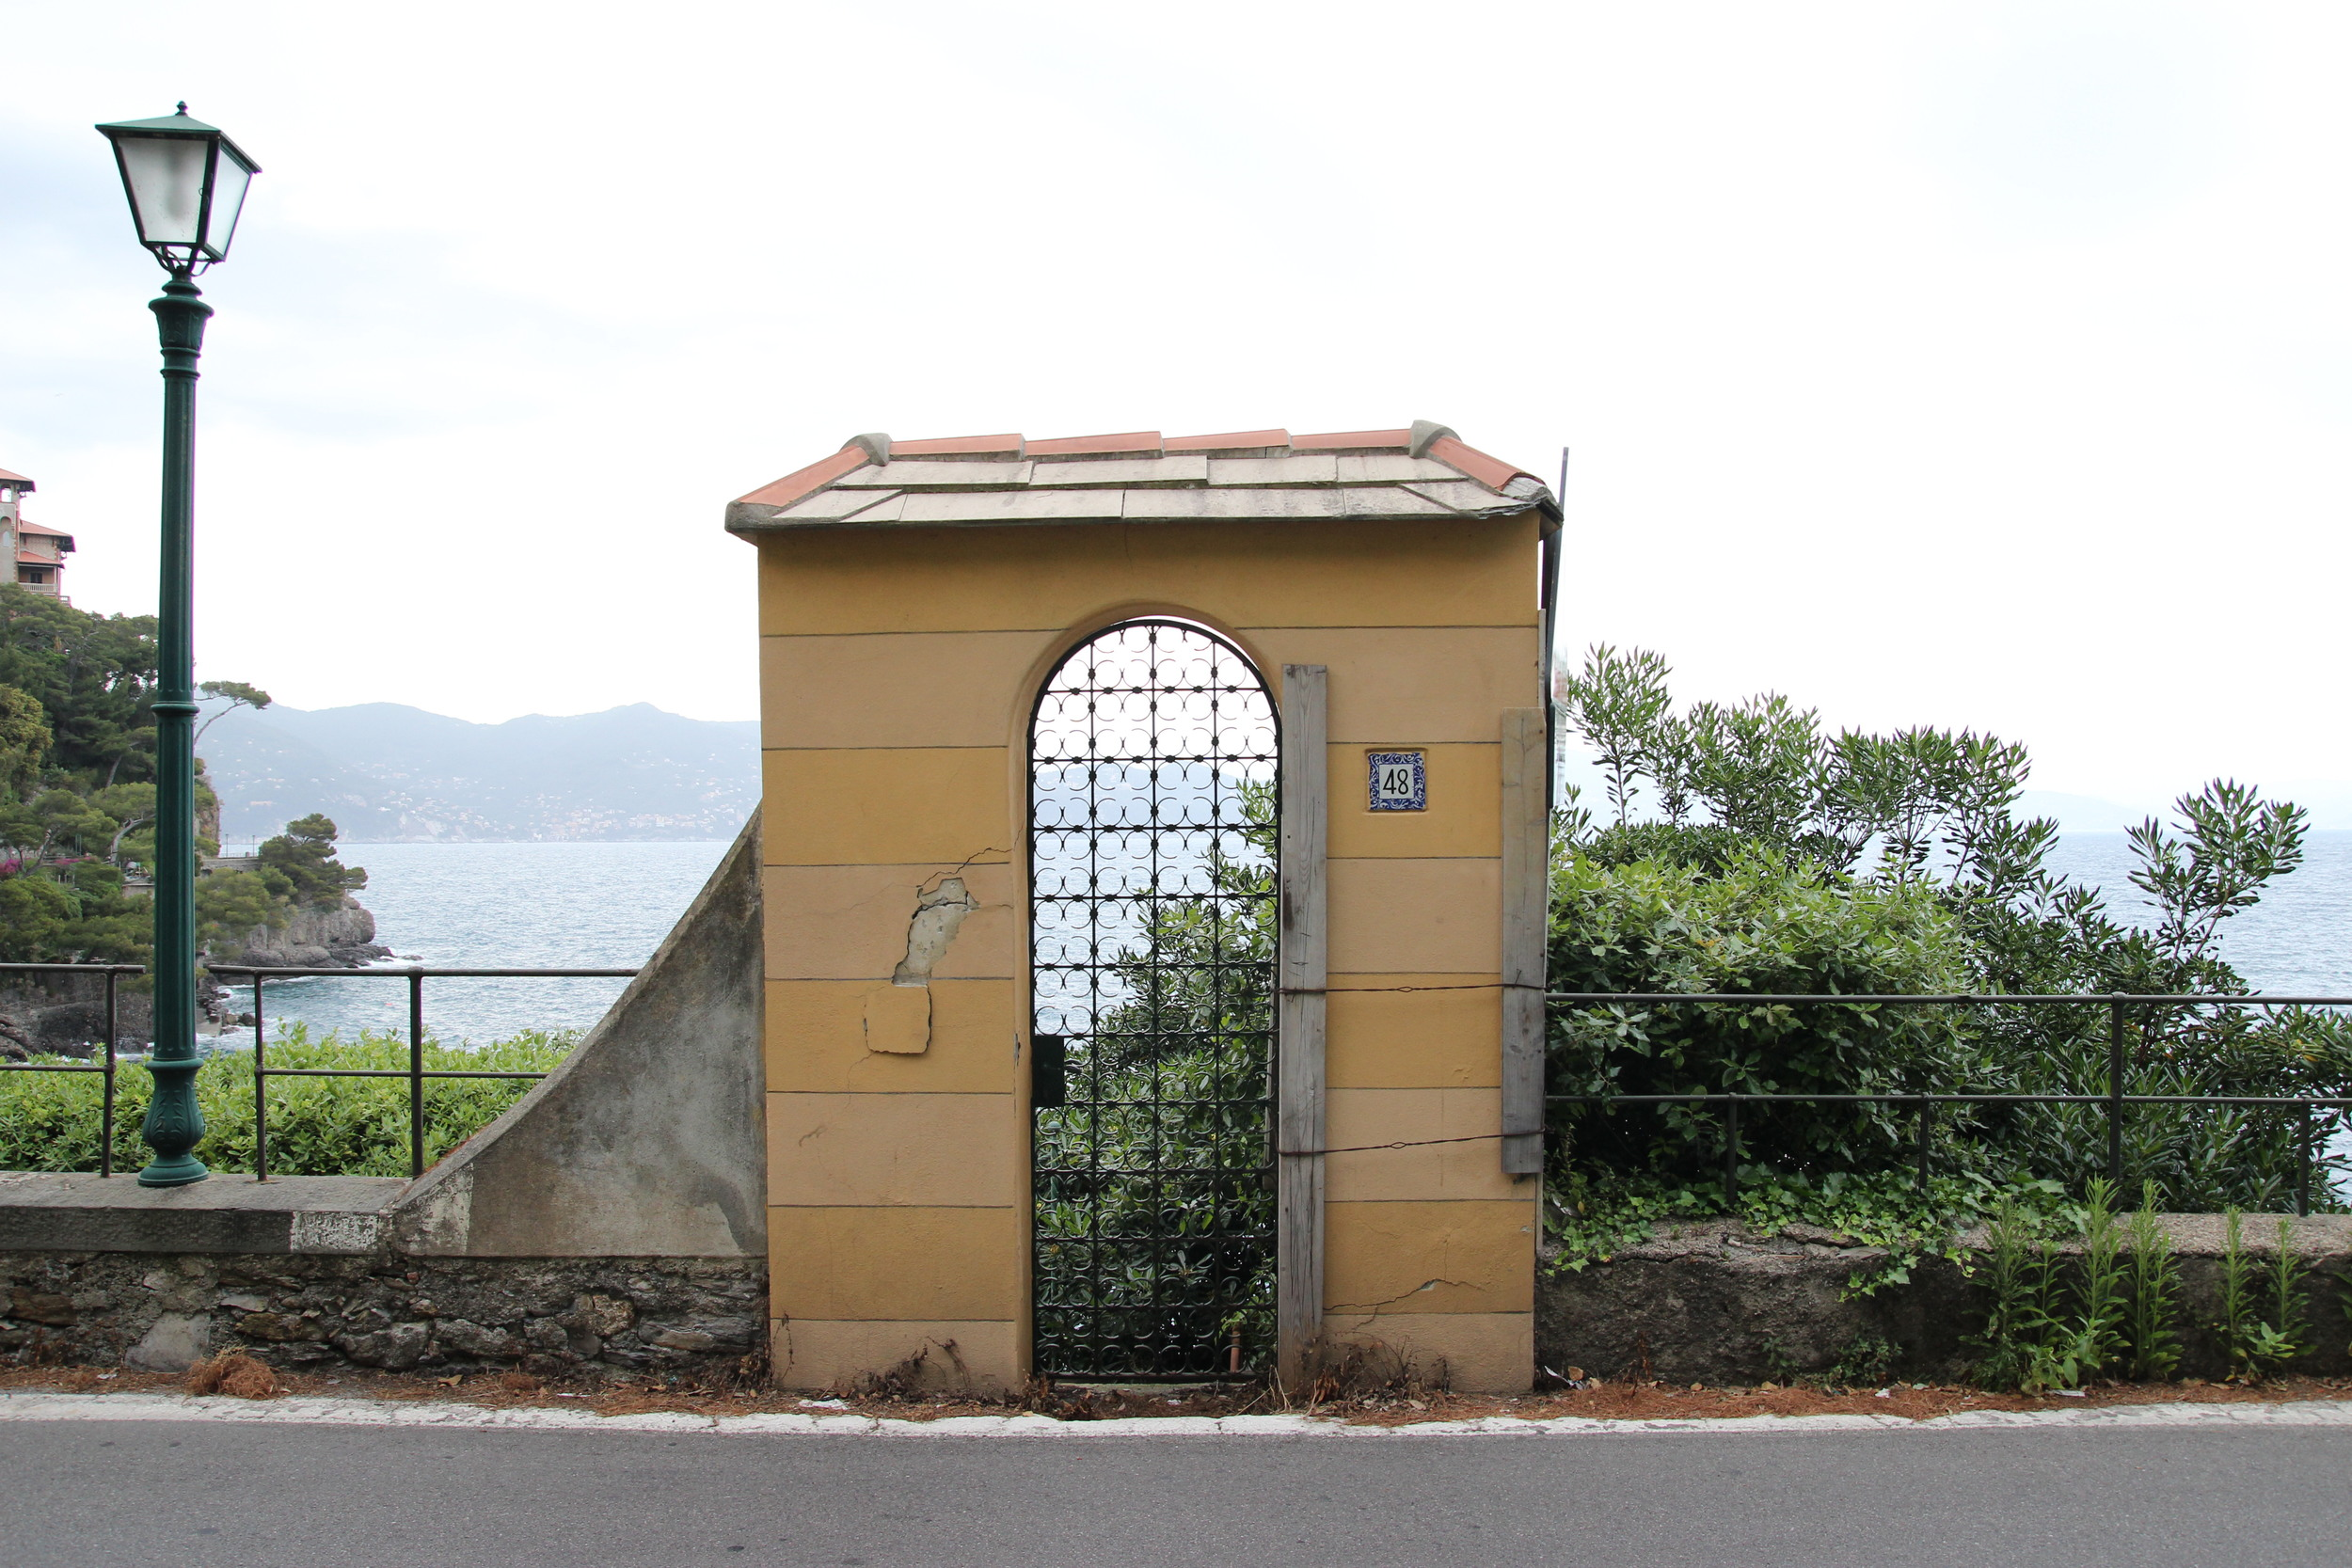 PORTOFINO  Walking along the road pasttiny villages to one of the most beautifully urbaneharbor towns in the world, we came across this doorway. Literally a door to the Ligurian Coast.